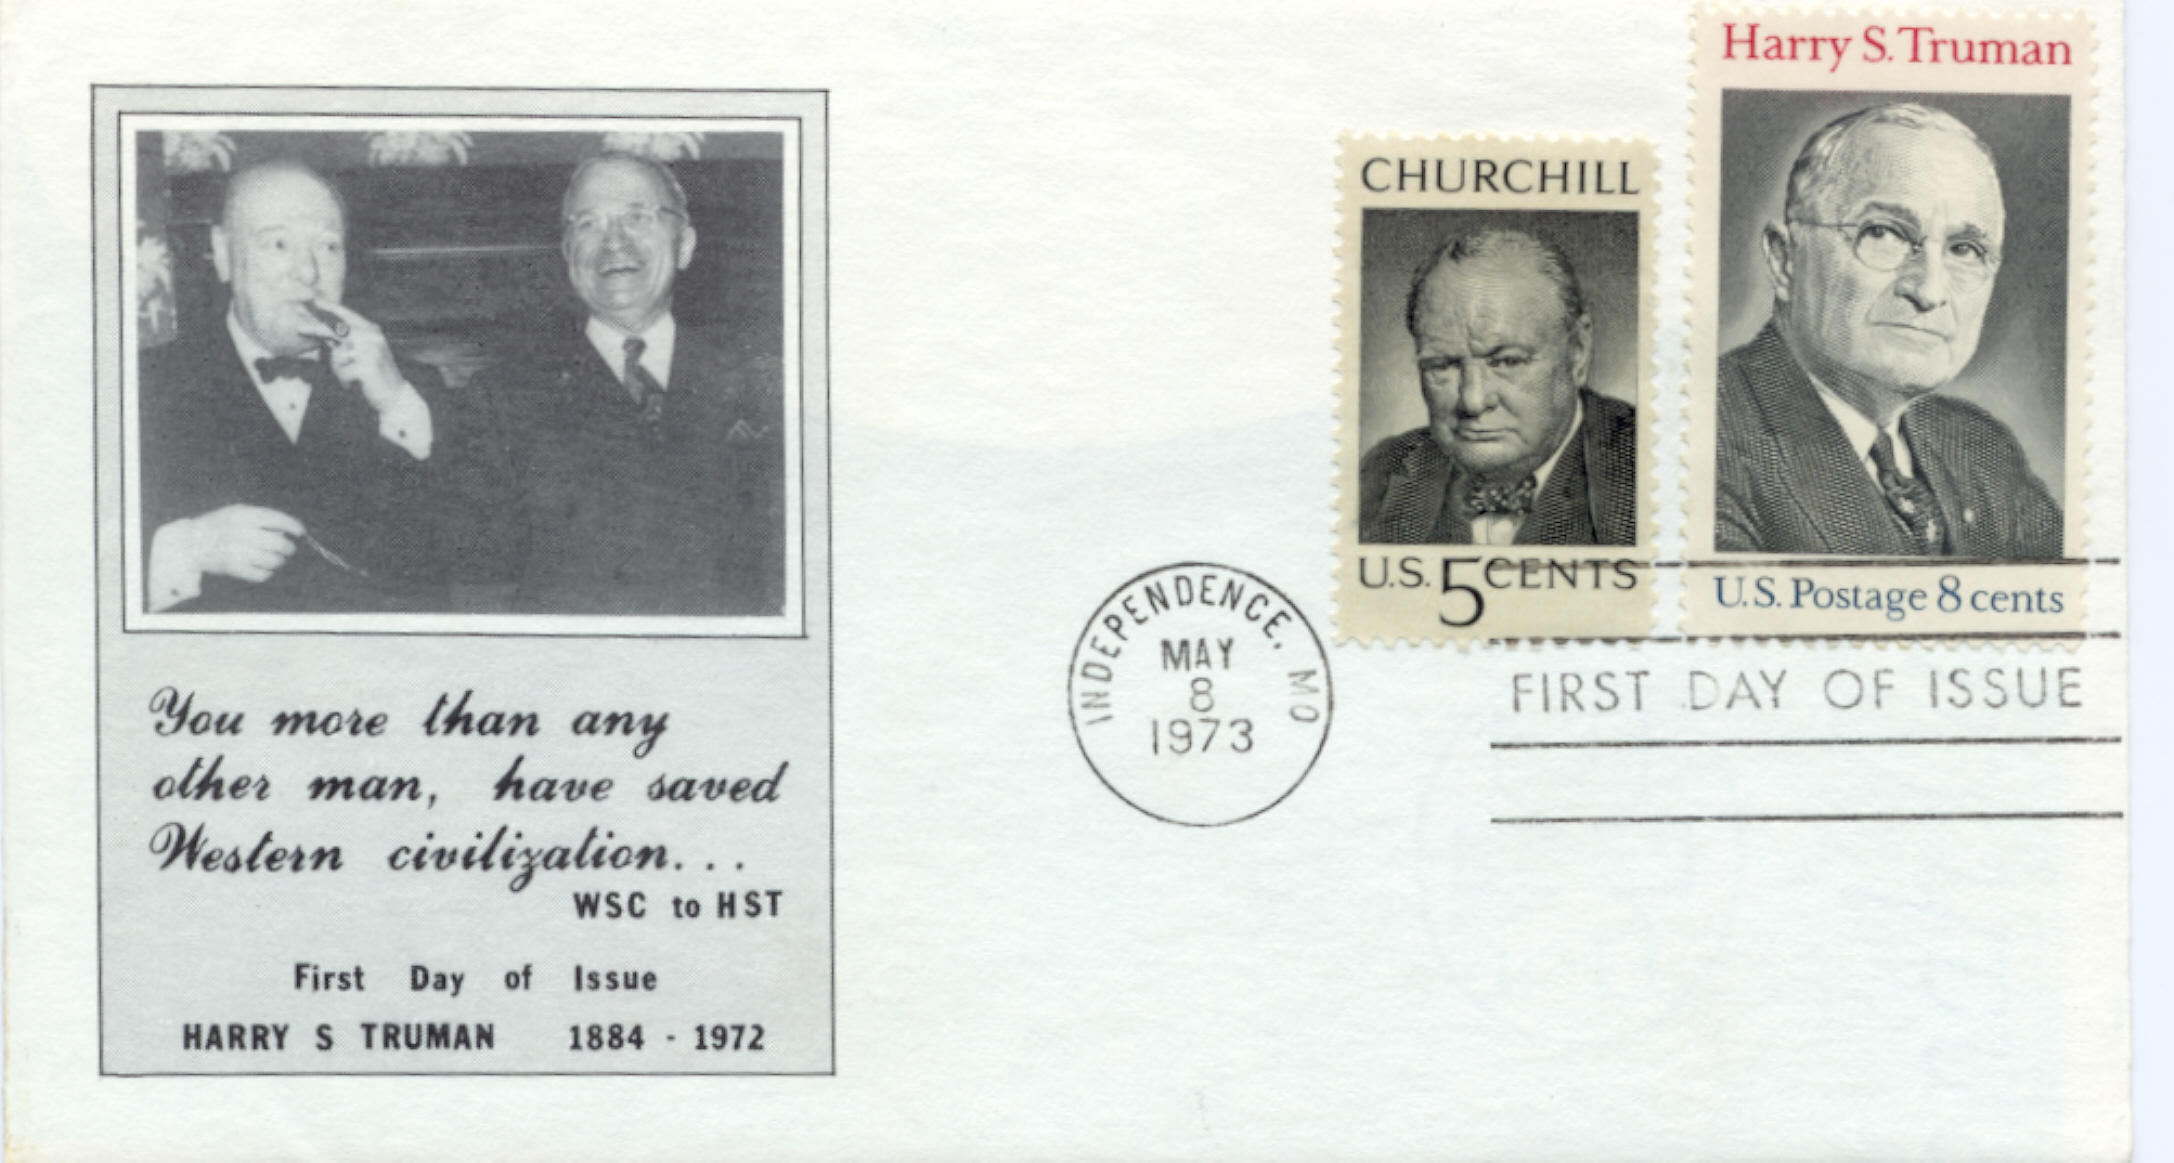 HST Memorial FDC #13